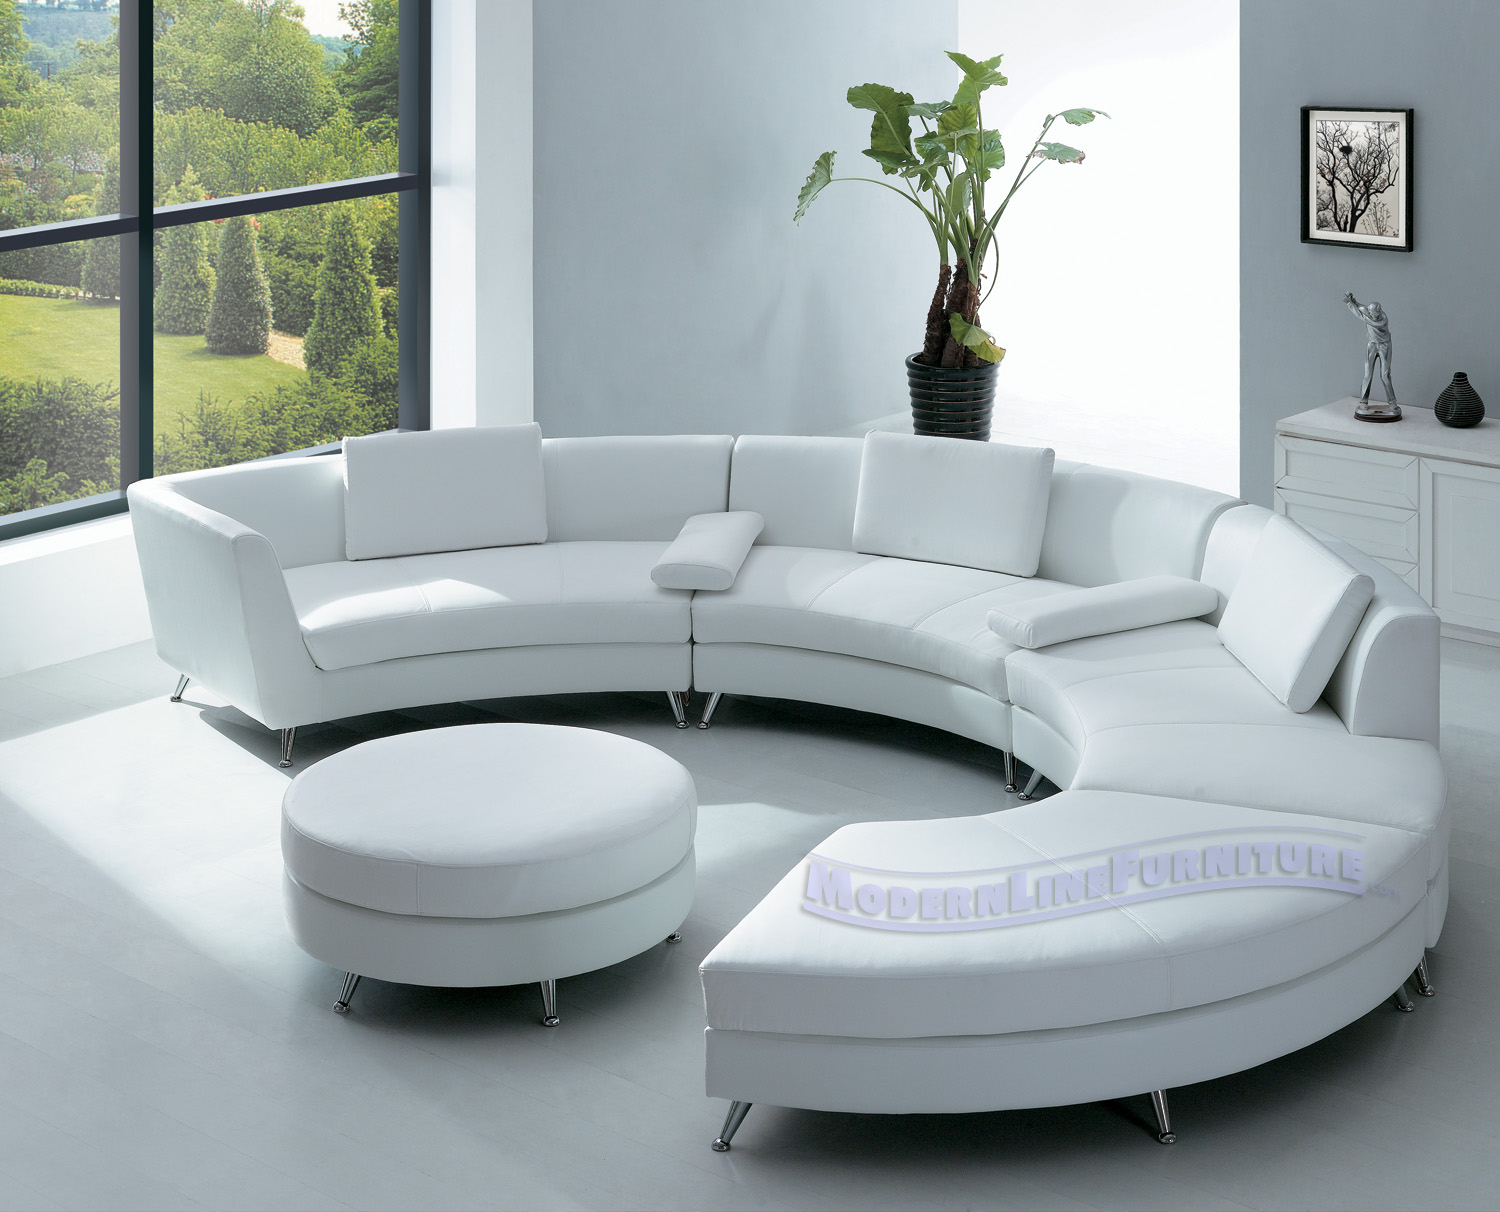 modern sofas furniture sets chaise longue baratos barcelona elegance of living sofa designs